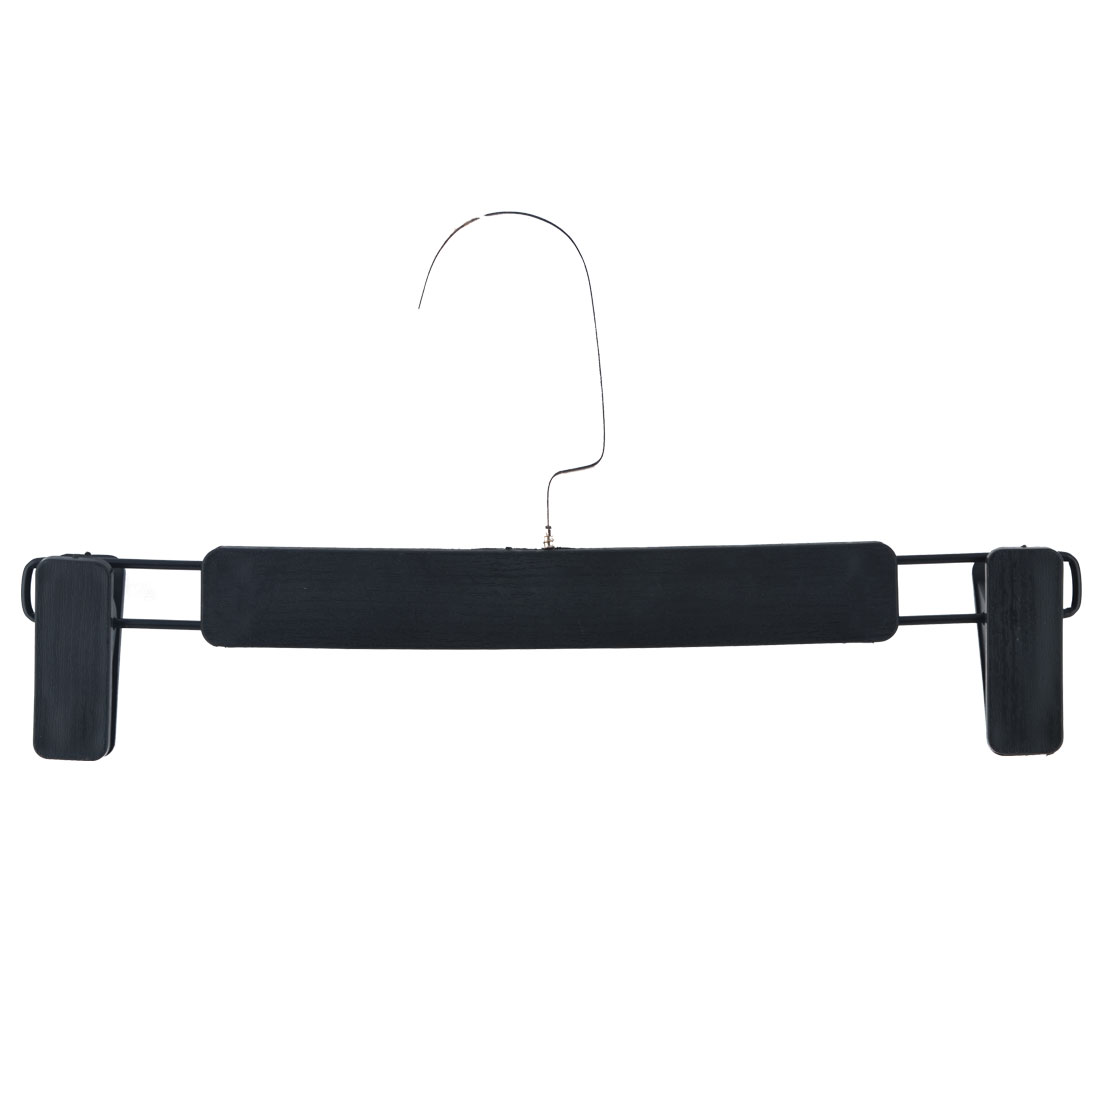 Household Wardrobe Balcony Plastic Double Clips Suits Pants Clothes Hanger Black